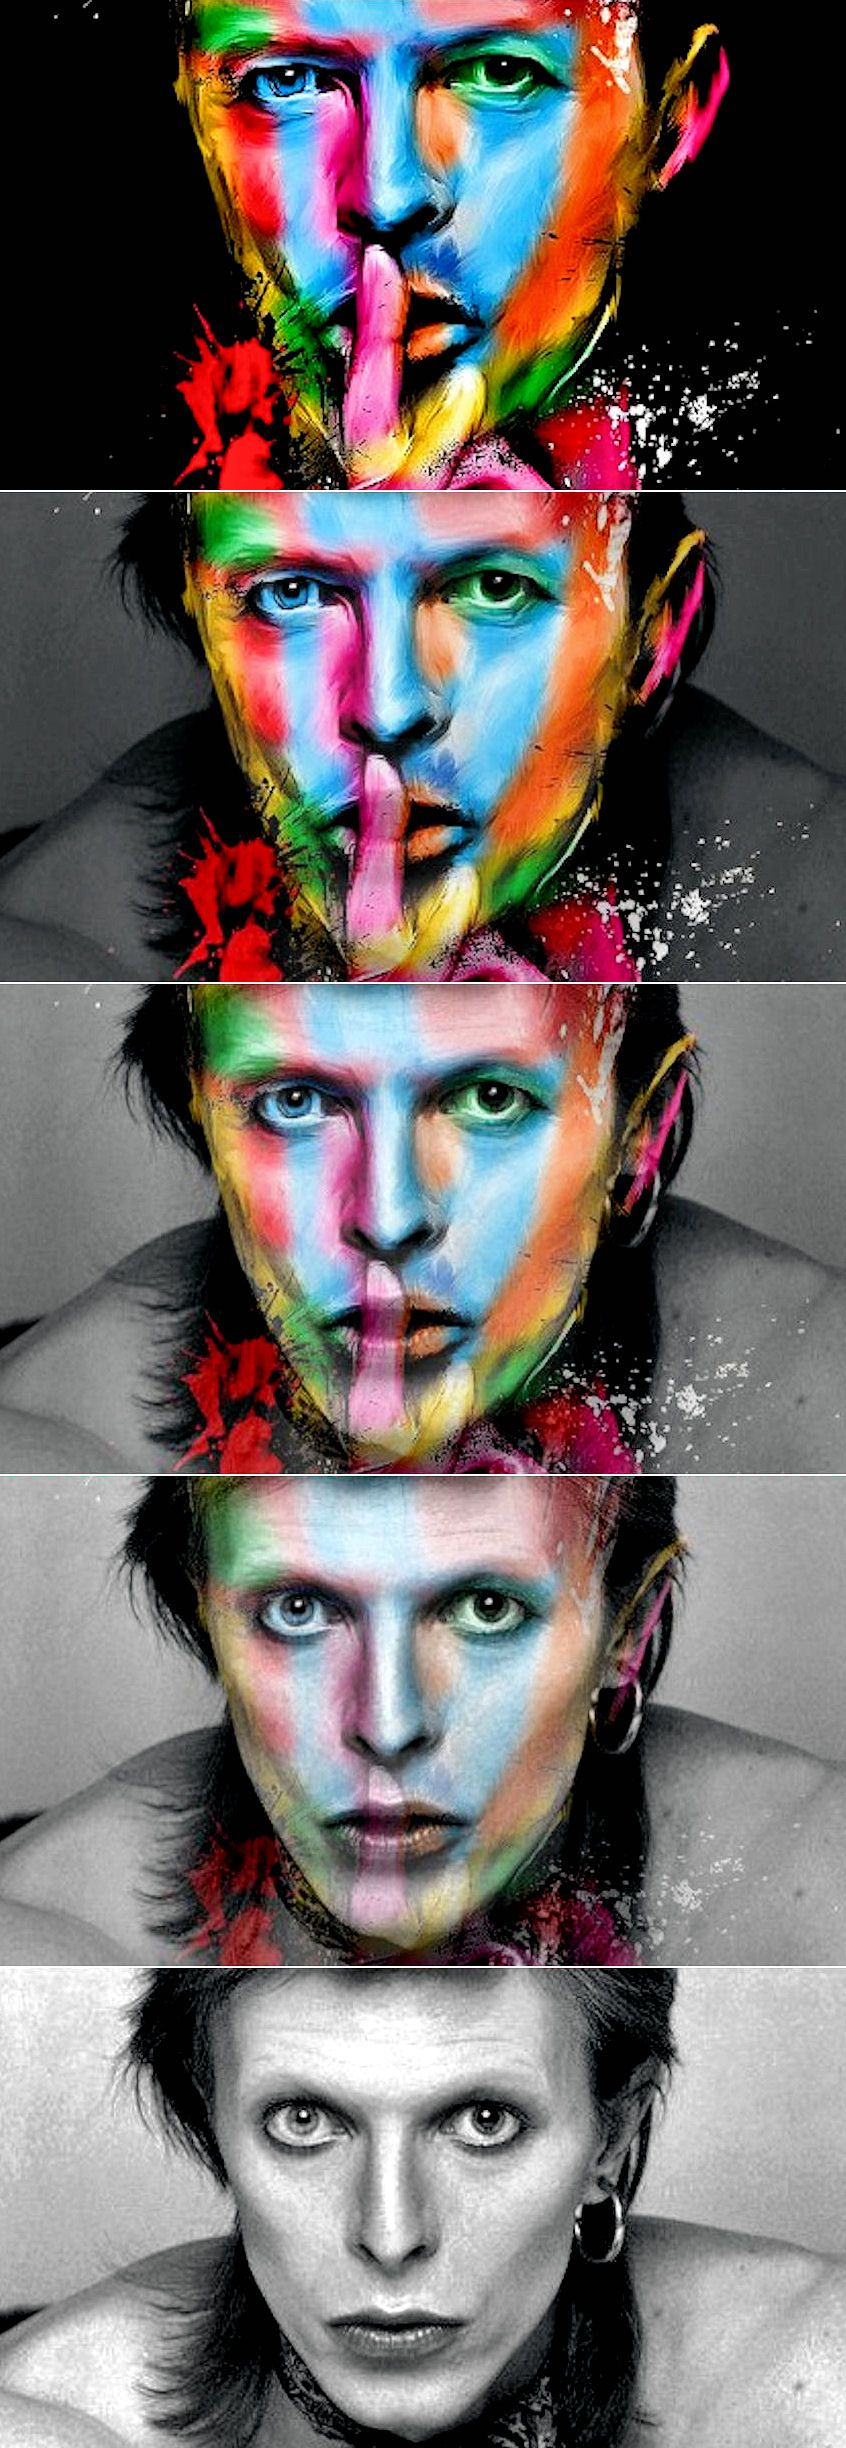 "David Bowie Morphing Beautiful pictures of David Bowie that blend together with using Morphing. Music titel: ""Visions and Sounds"" by Karpa. Watch: https://www.facebook.com/Drakre52/videos/787084781419107/ or http://youtu.be/JOrzJ2dU5OA"